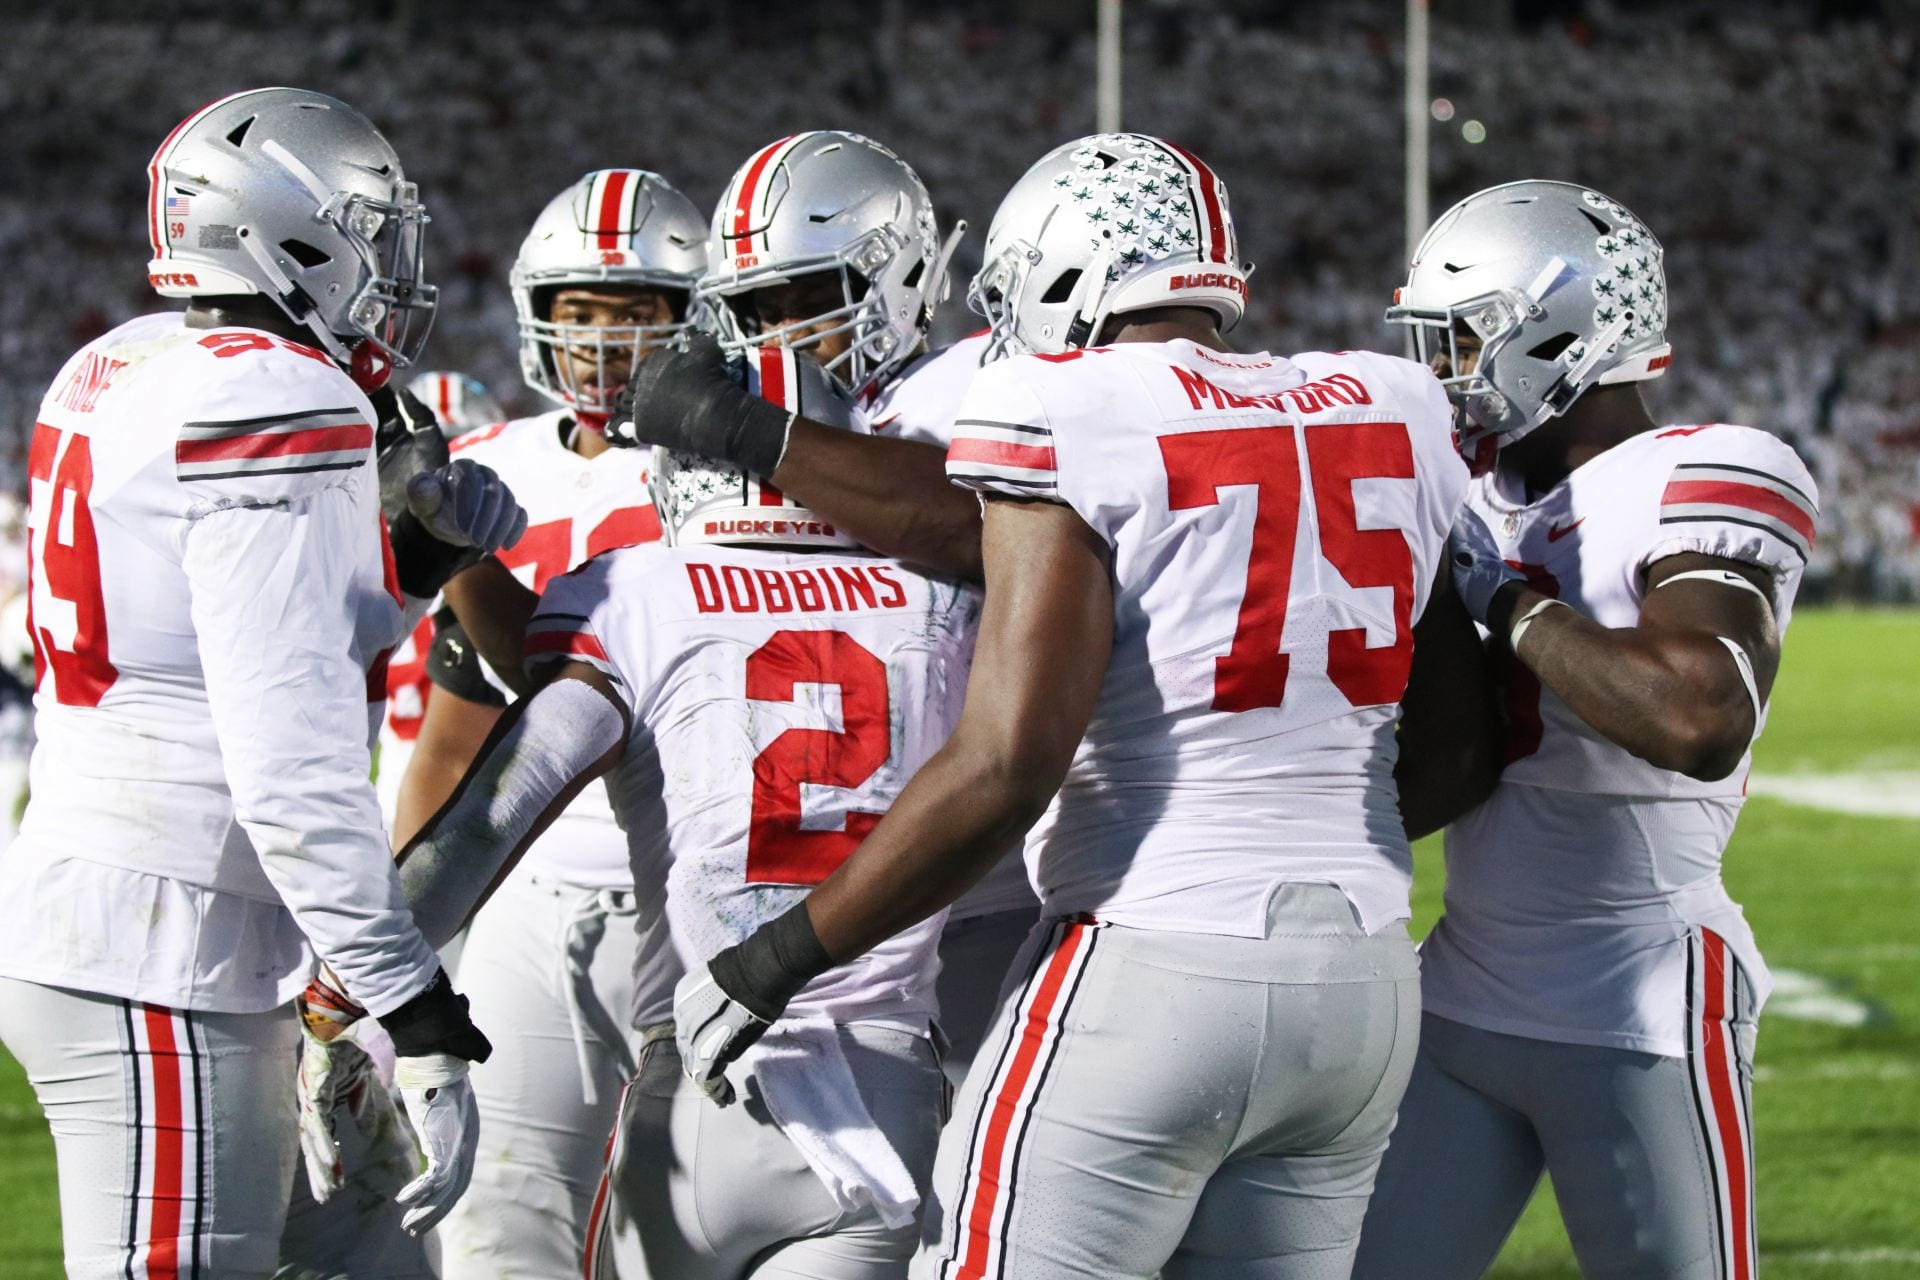 7accd0eb0 The Buckeyes Offense celebrates after sophomore running back J.K. Dobbins (2)  scored a touchdown in the second quarter of the game against Penn State on  ...